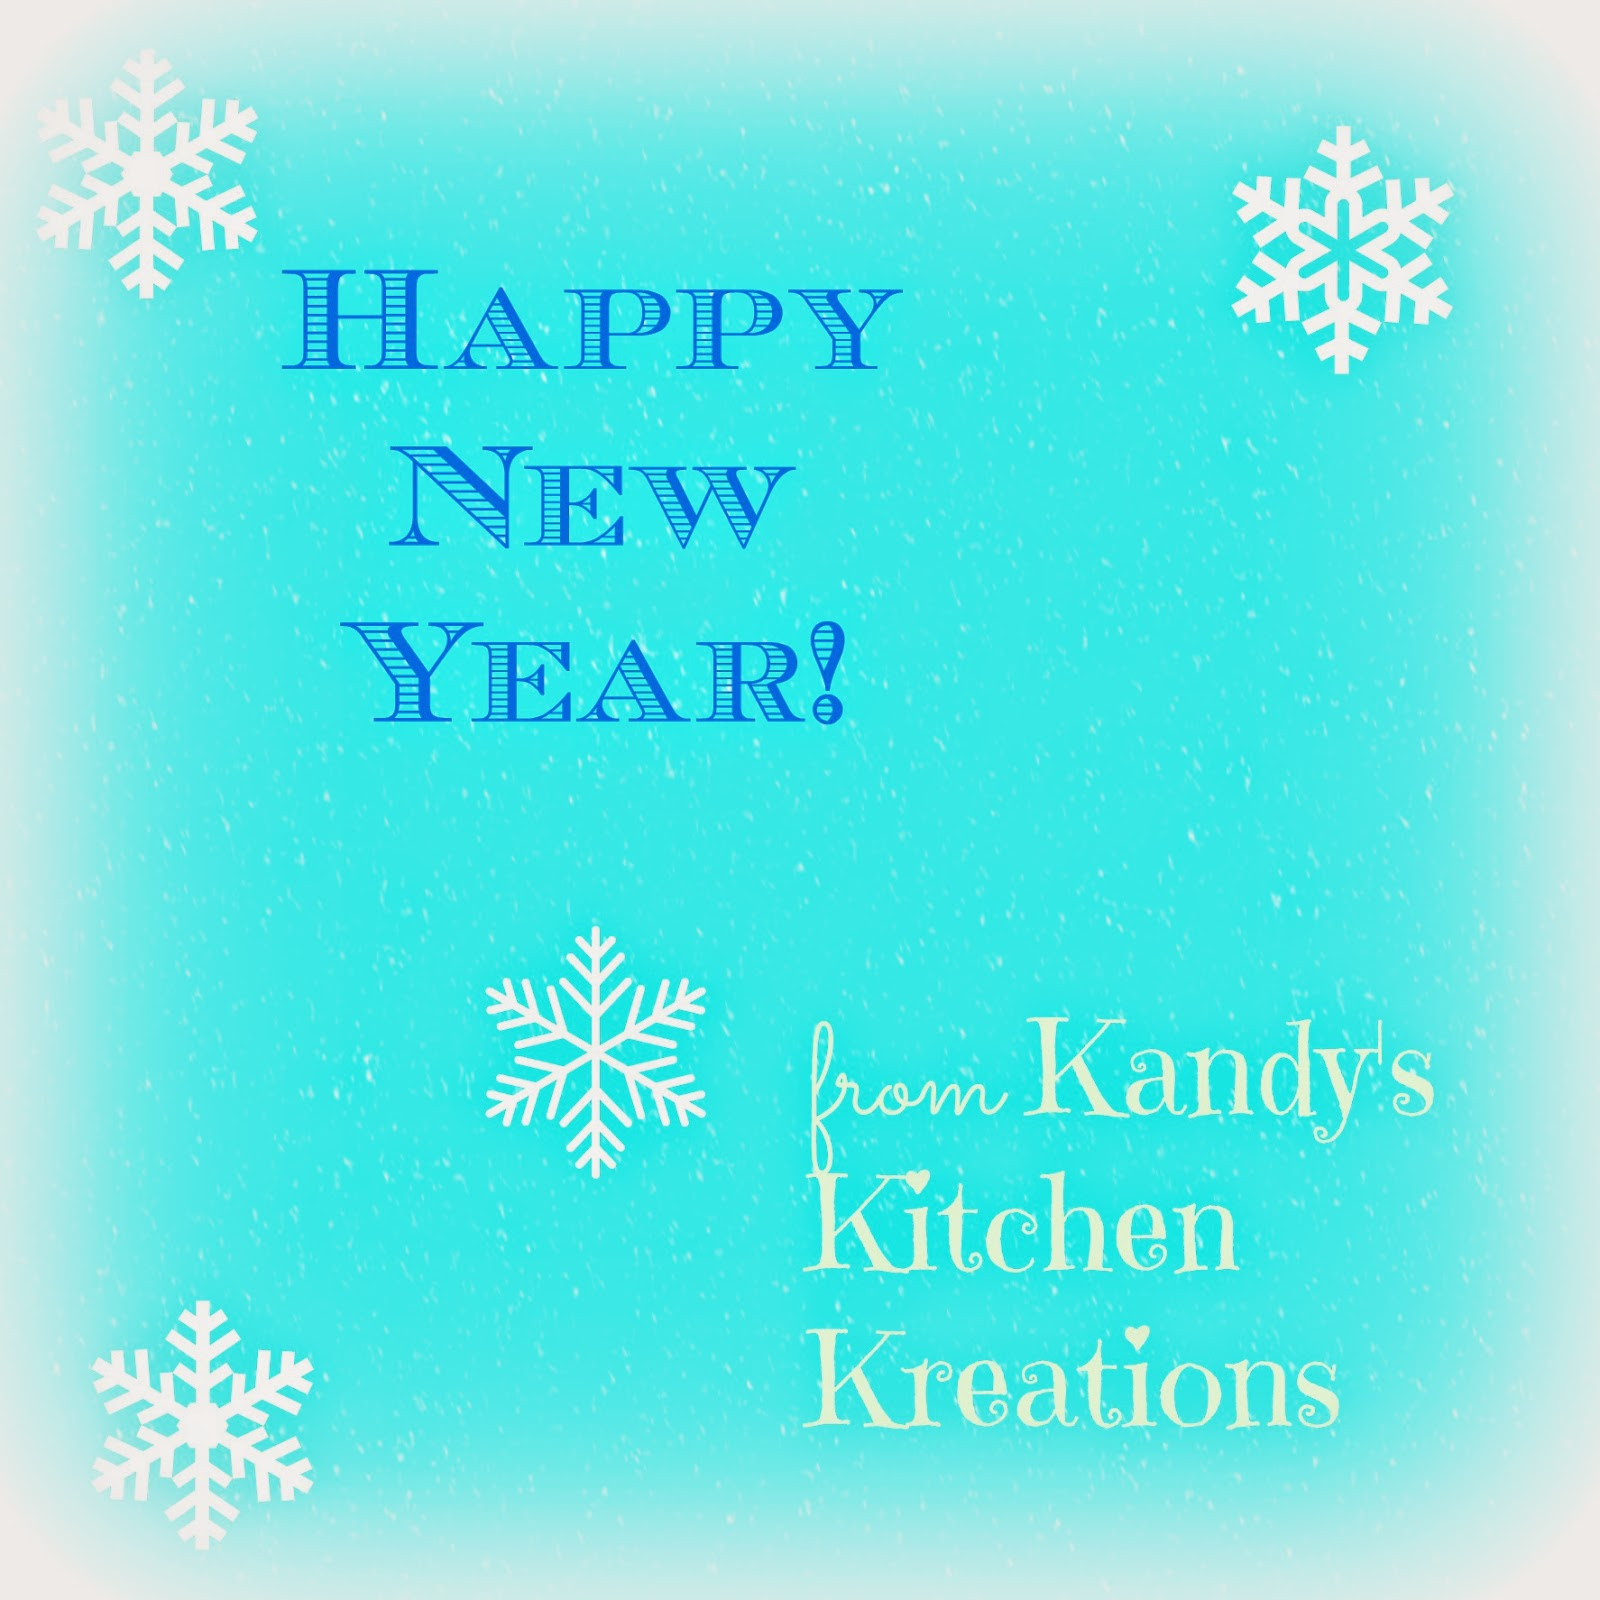 Kandy\'s Kitchen Kreations: December 2014